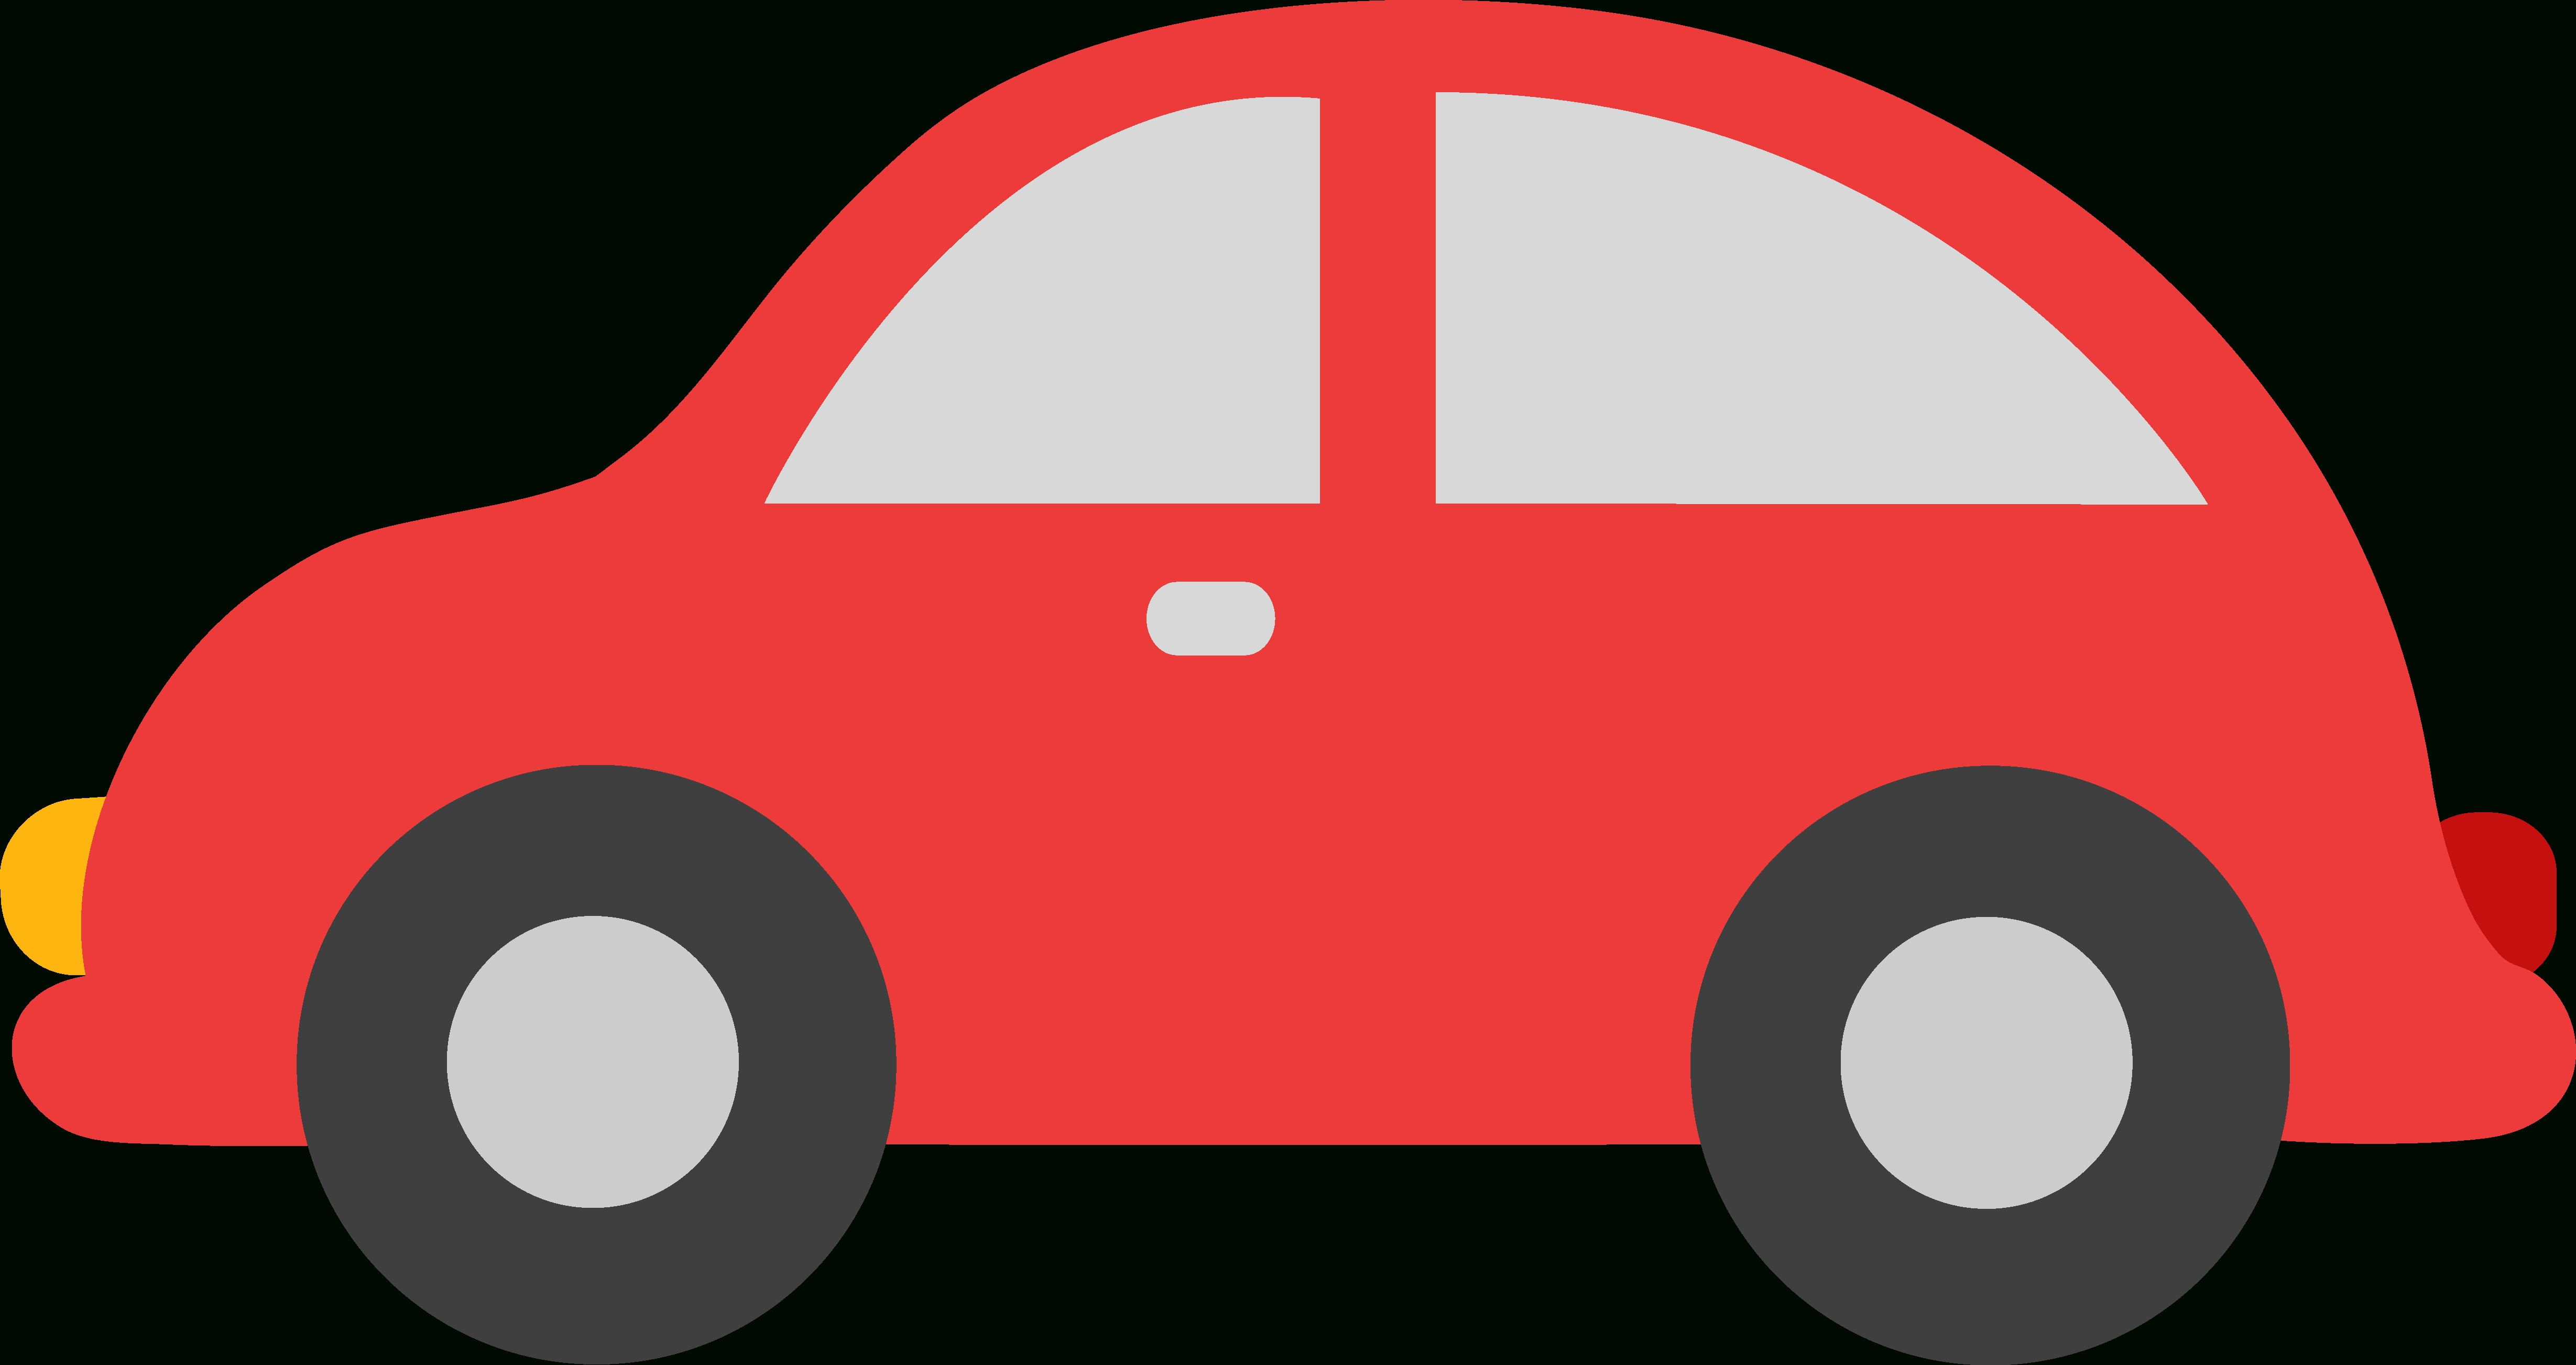 Car Clipart Png - Toy Car PNG Free Transparent Toy Car.PNG Images. | PlusPNG